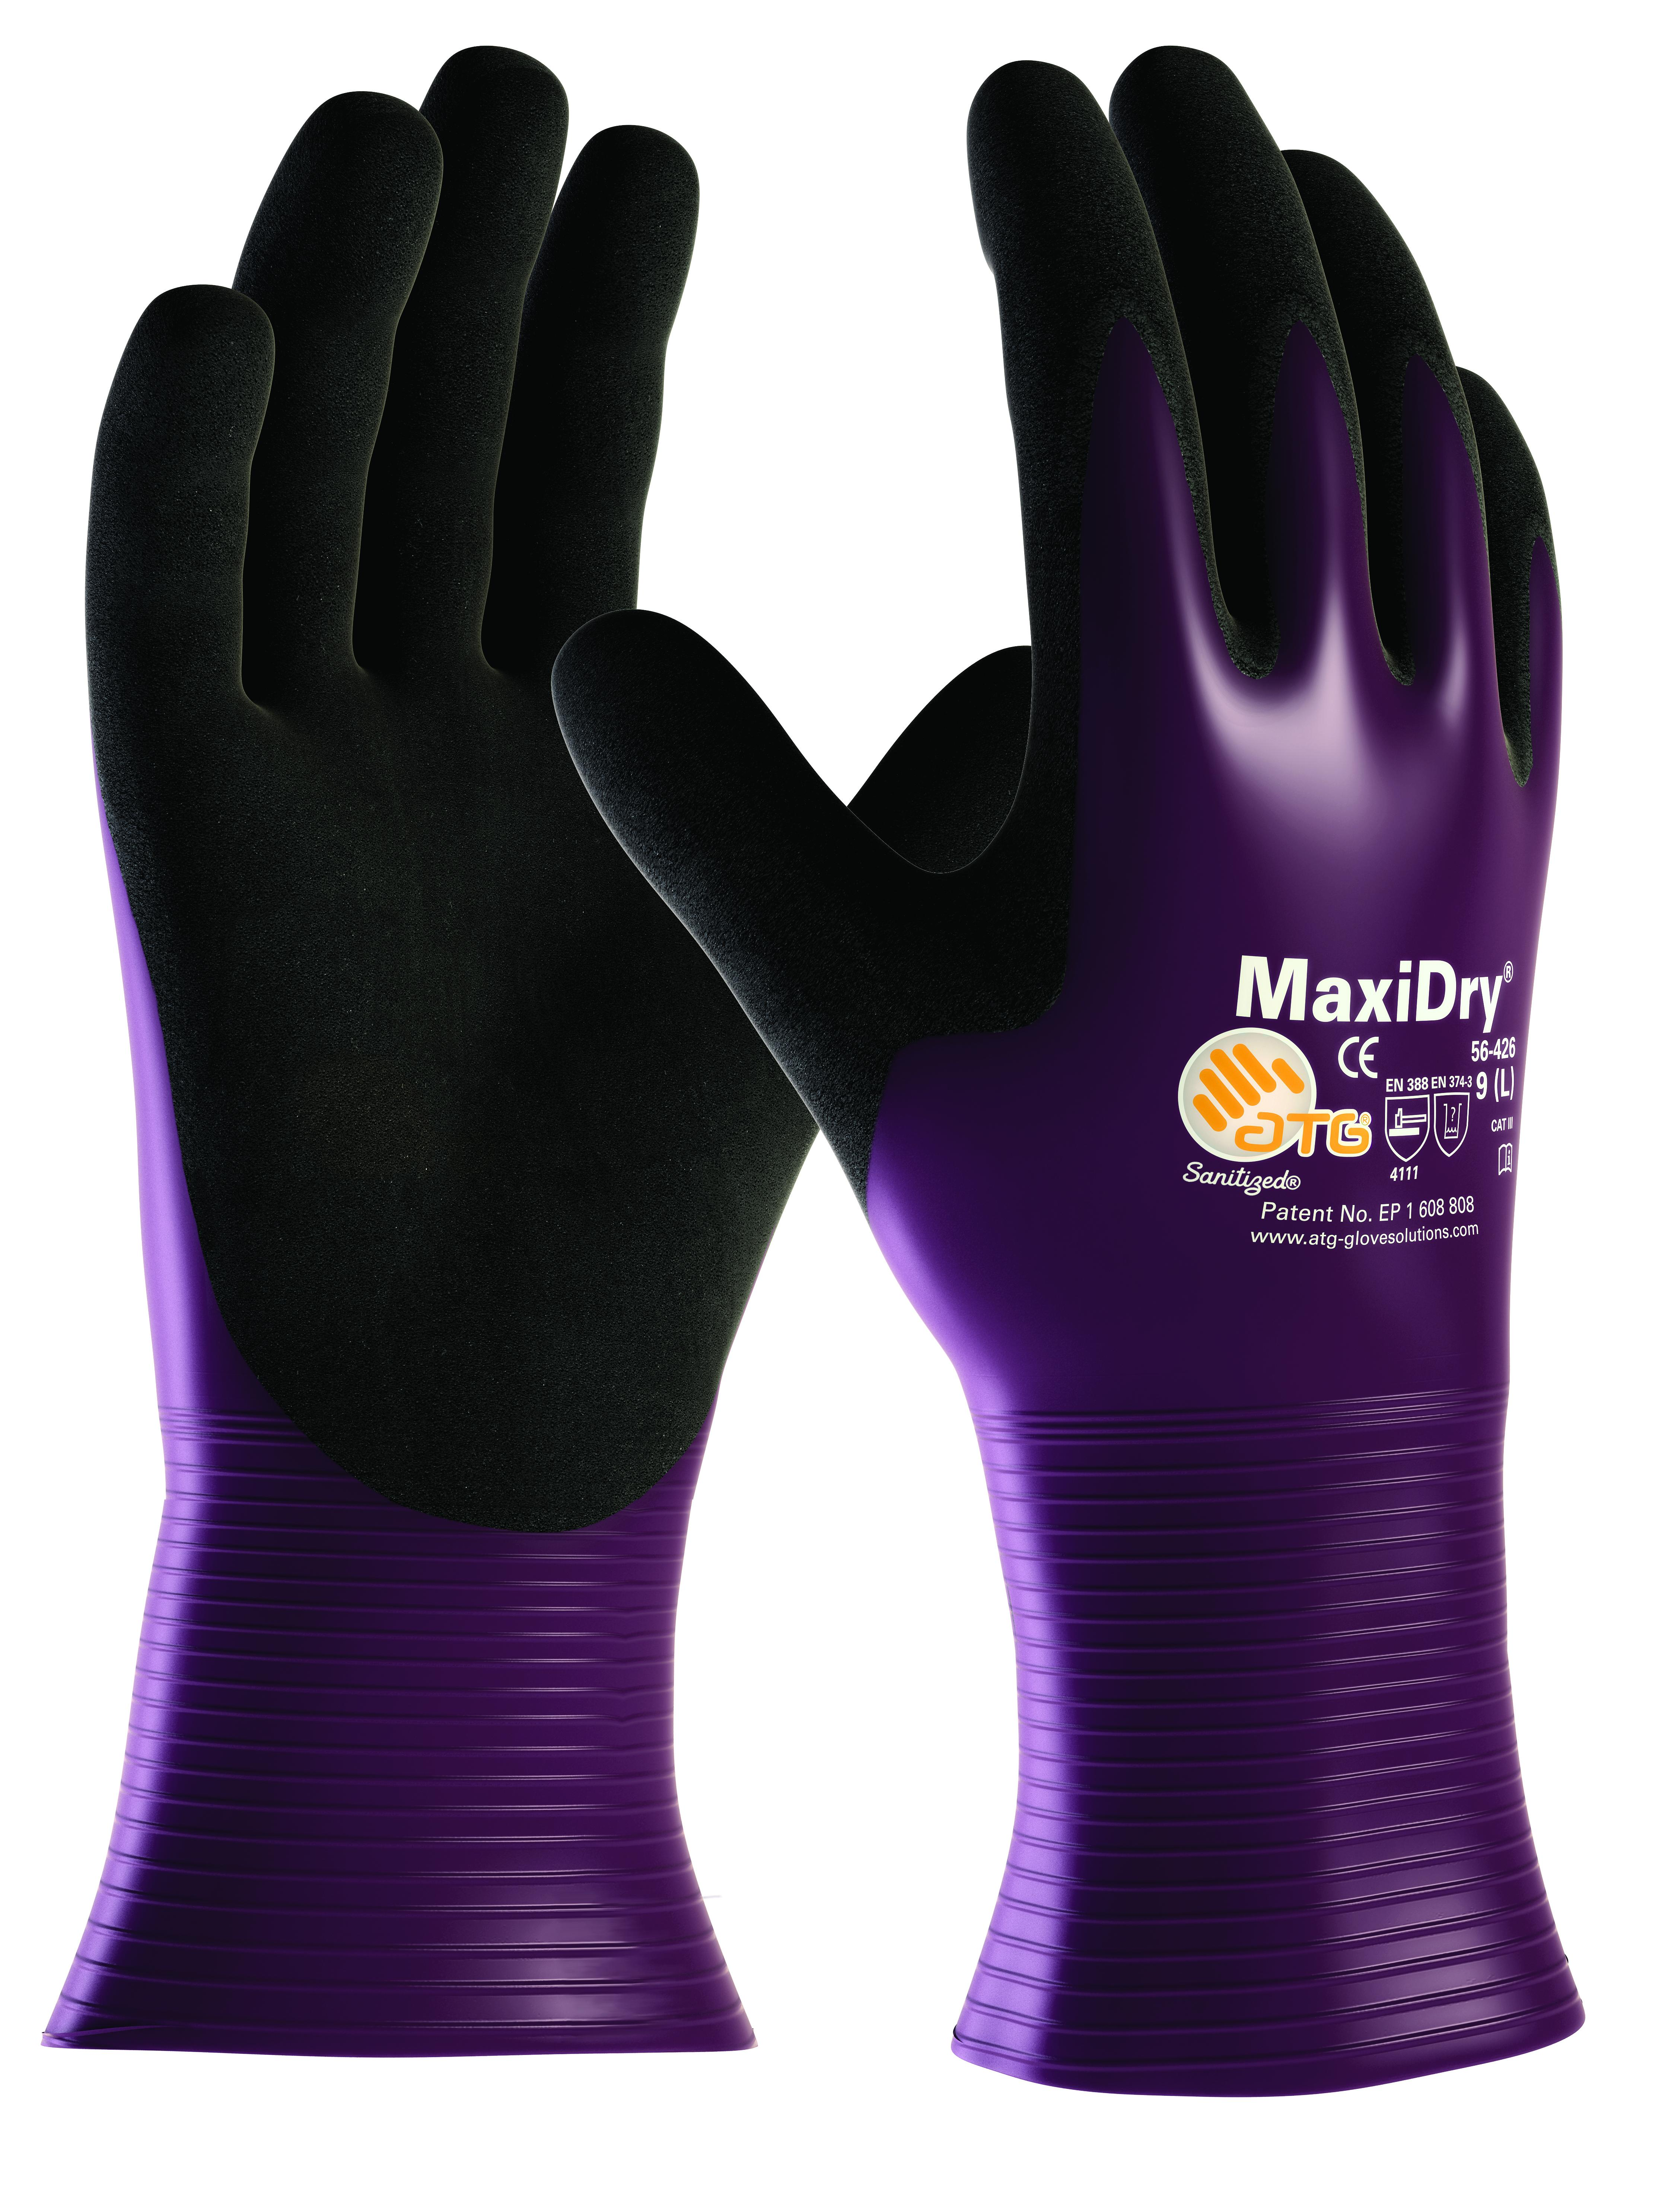 Maxidry Open Cuff Fully Coatd Gp Oil Resistant Gloves Ref 56-426